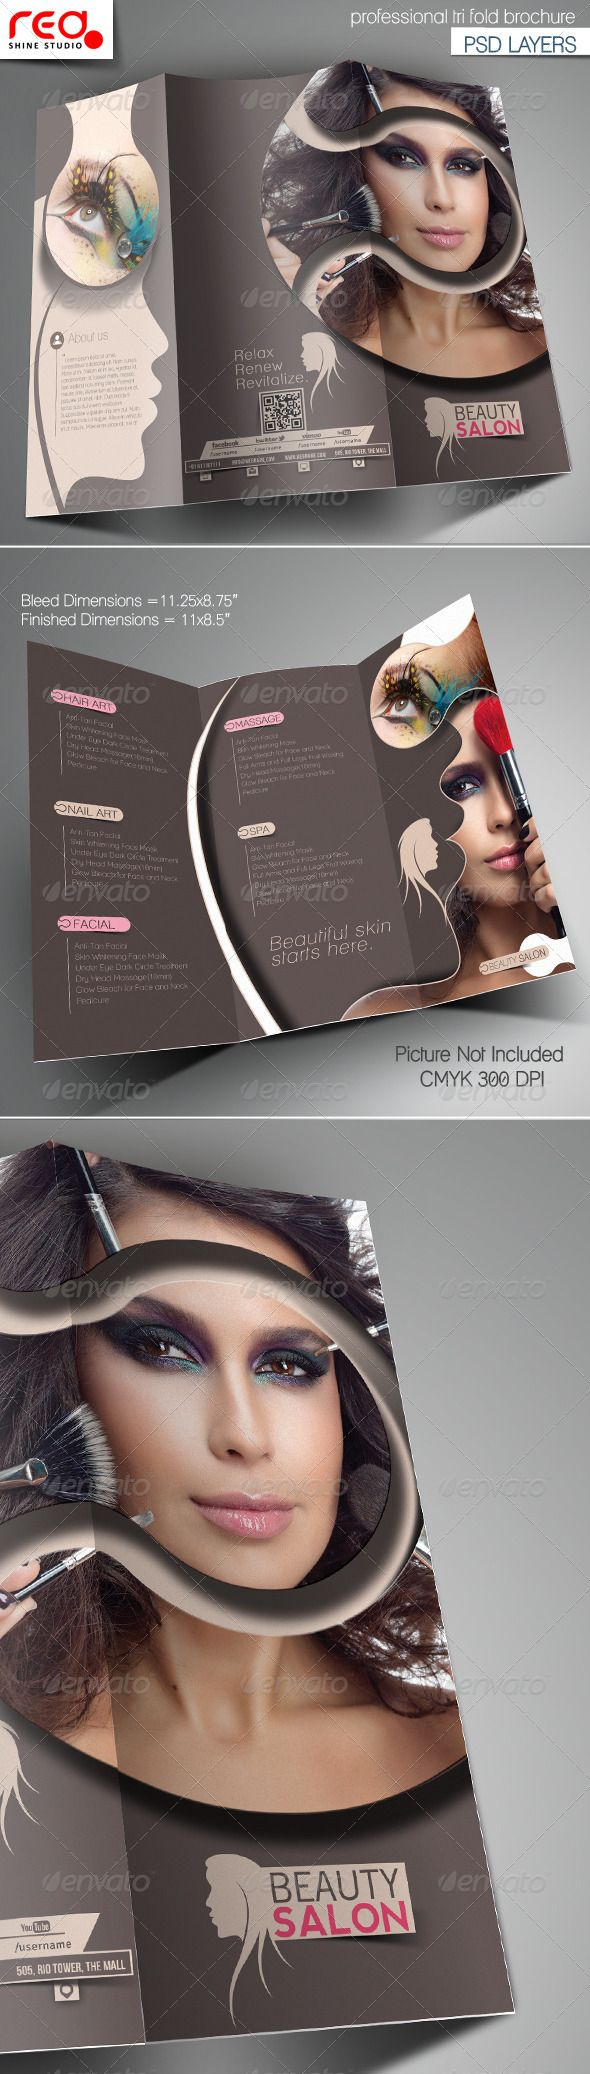 Beauty Salon Promotion Trifold Brochure Template  Salon